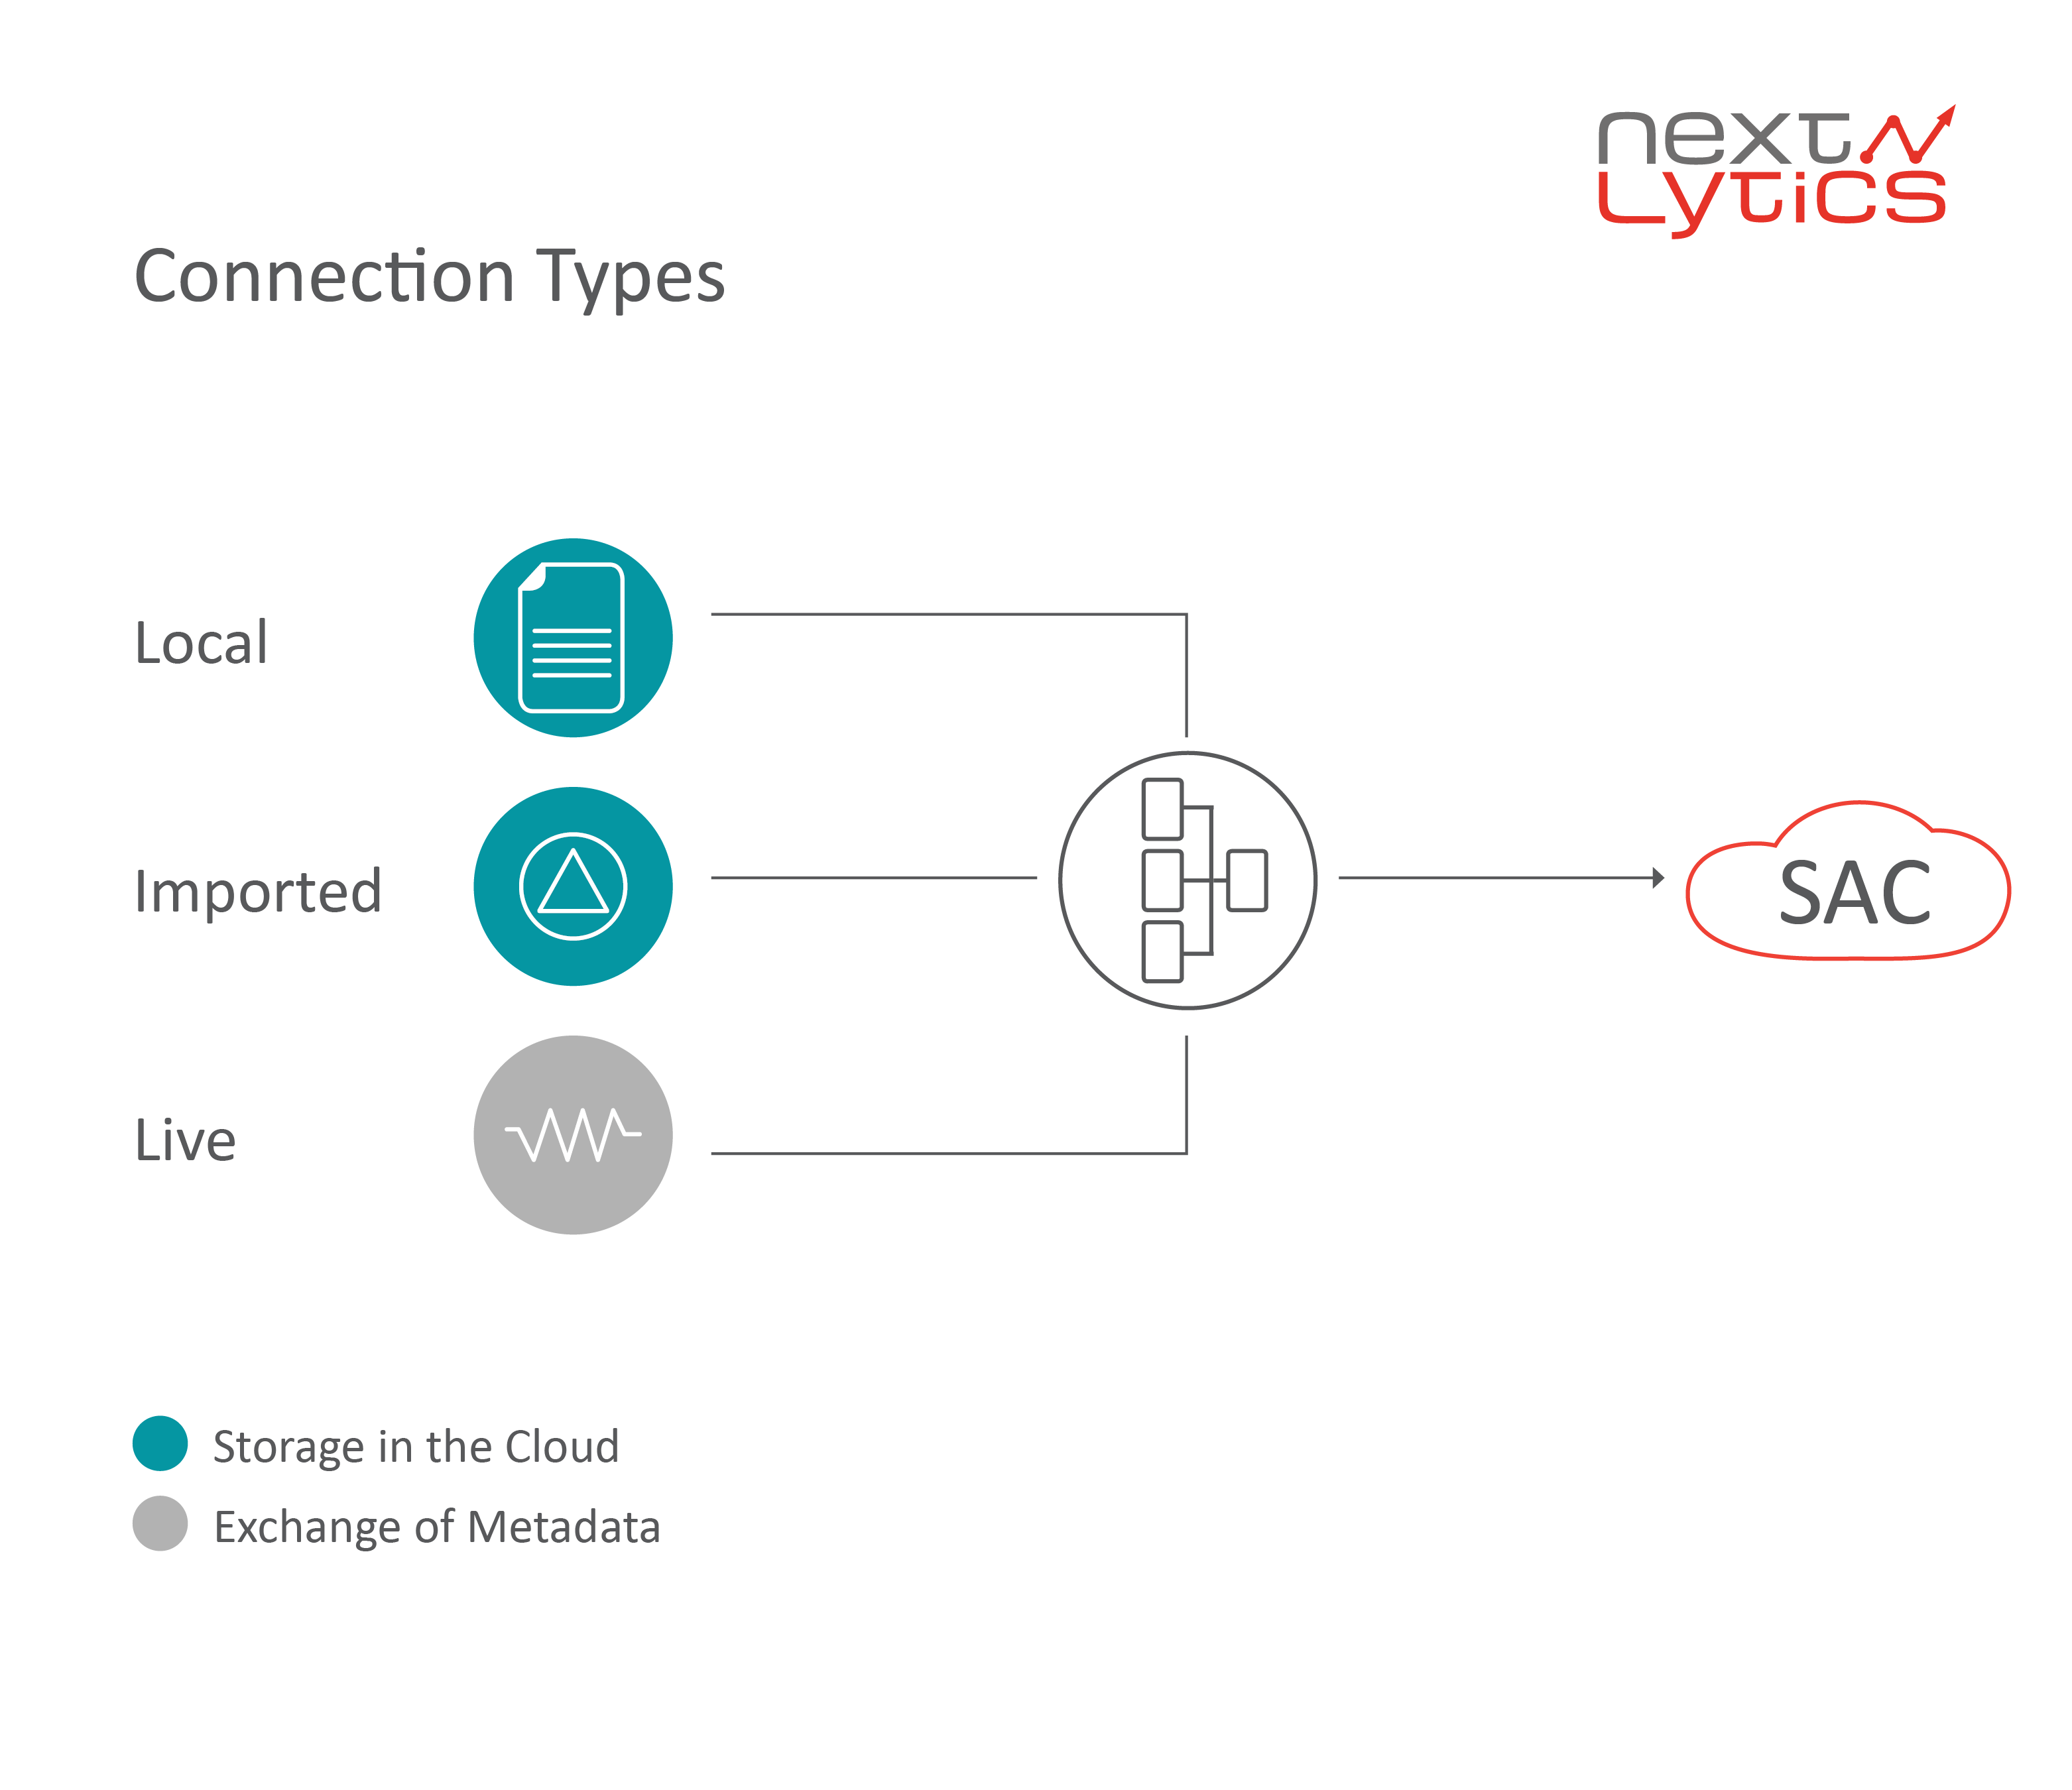 SAC Connection types